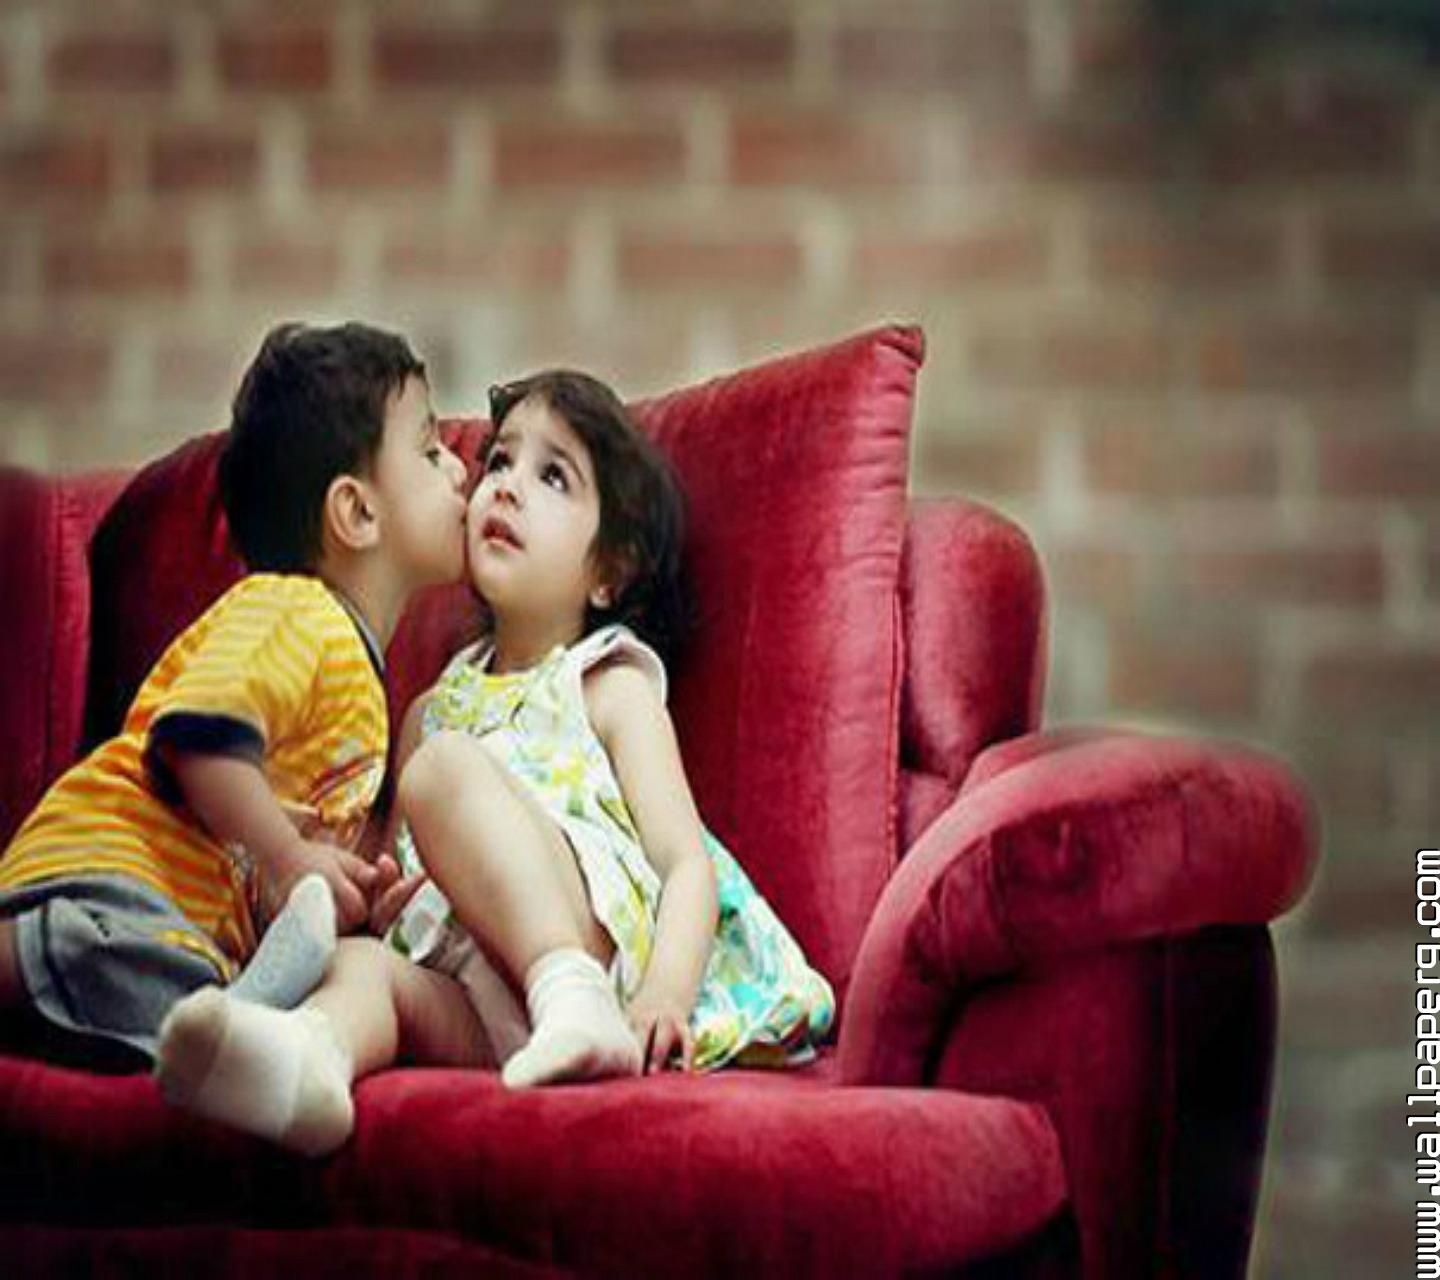 Baby kiss cute child kids mood love free wallpapers wide full hd baby kiss cute child kids mood love free wallpapers wide full hd altavistaventures Image collections